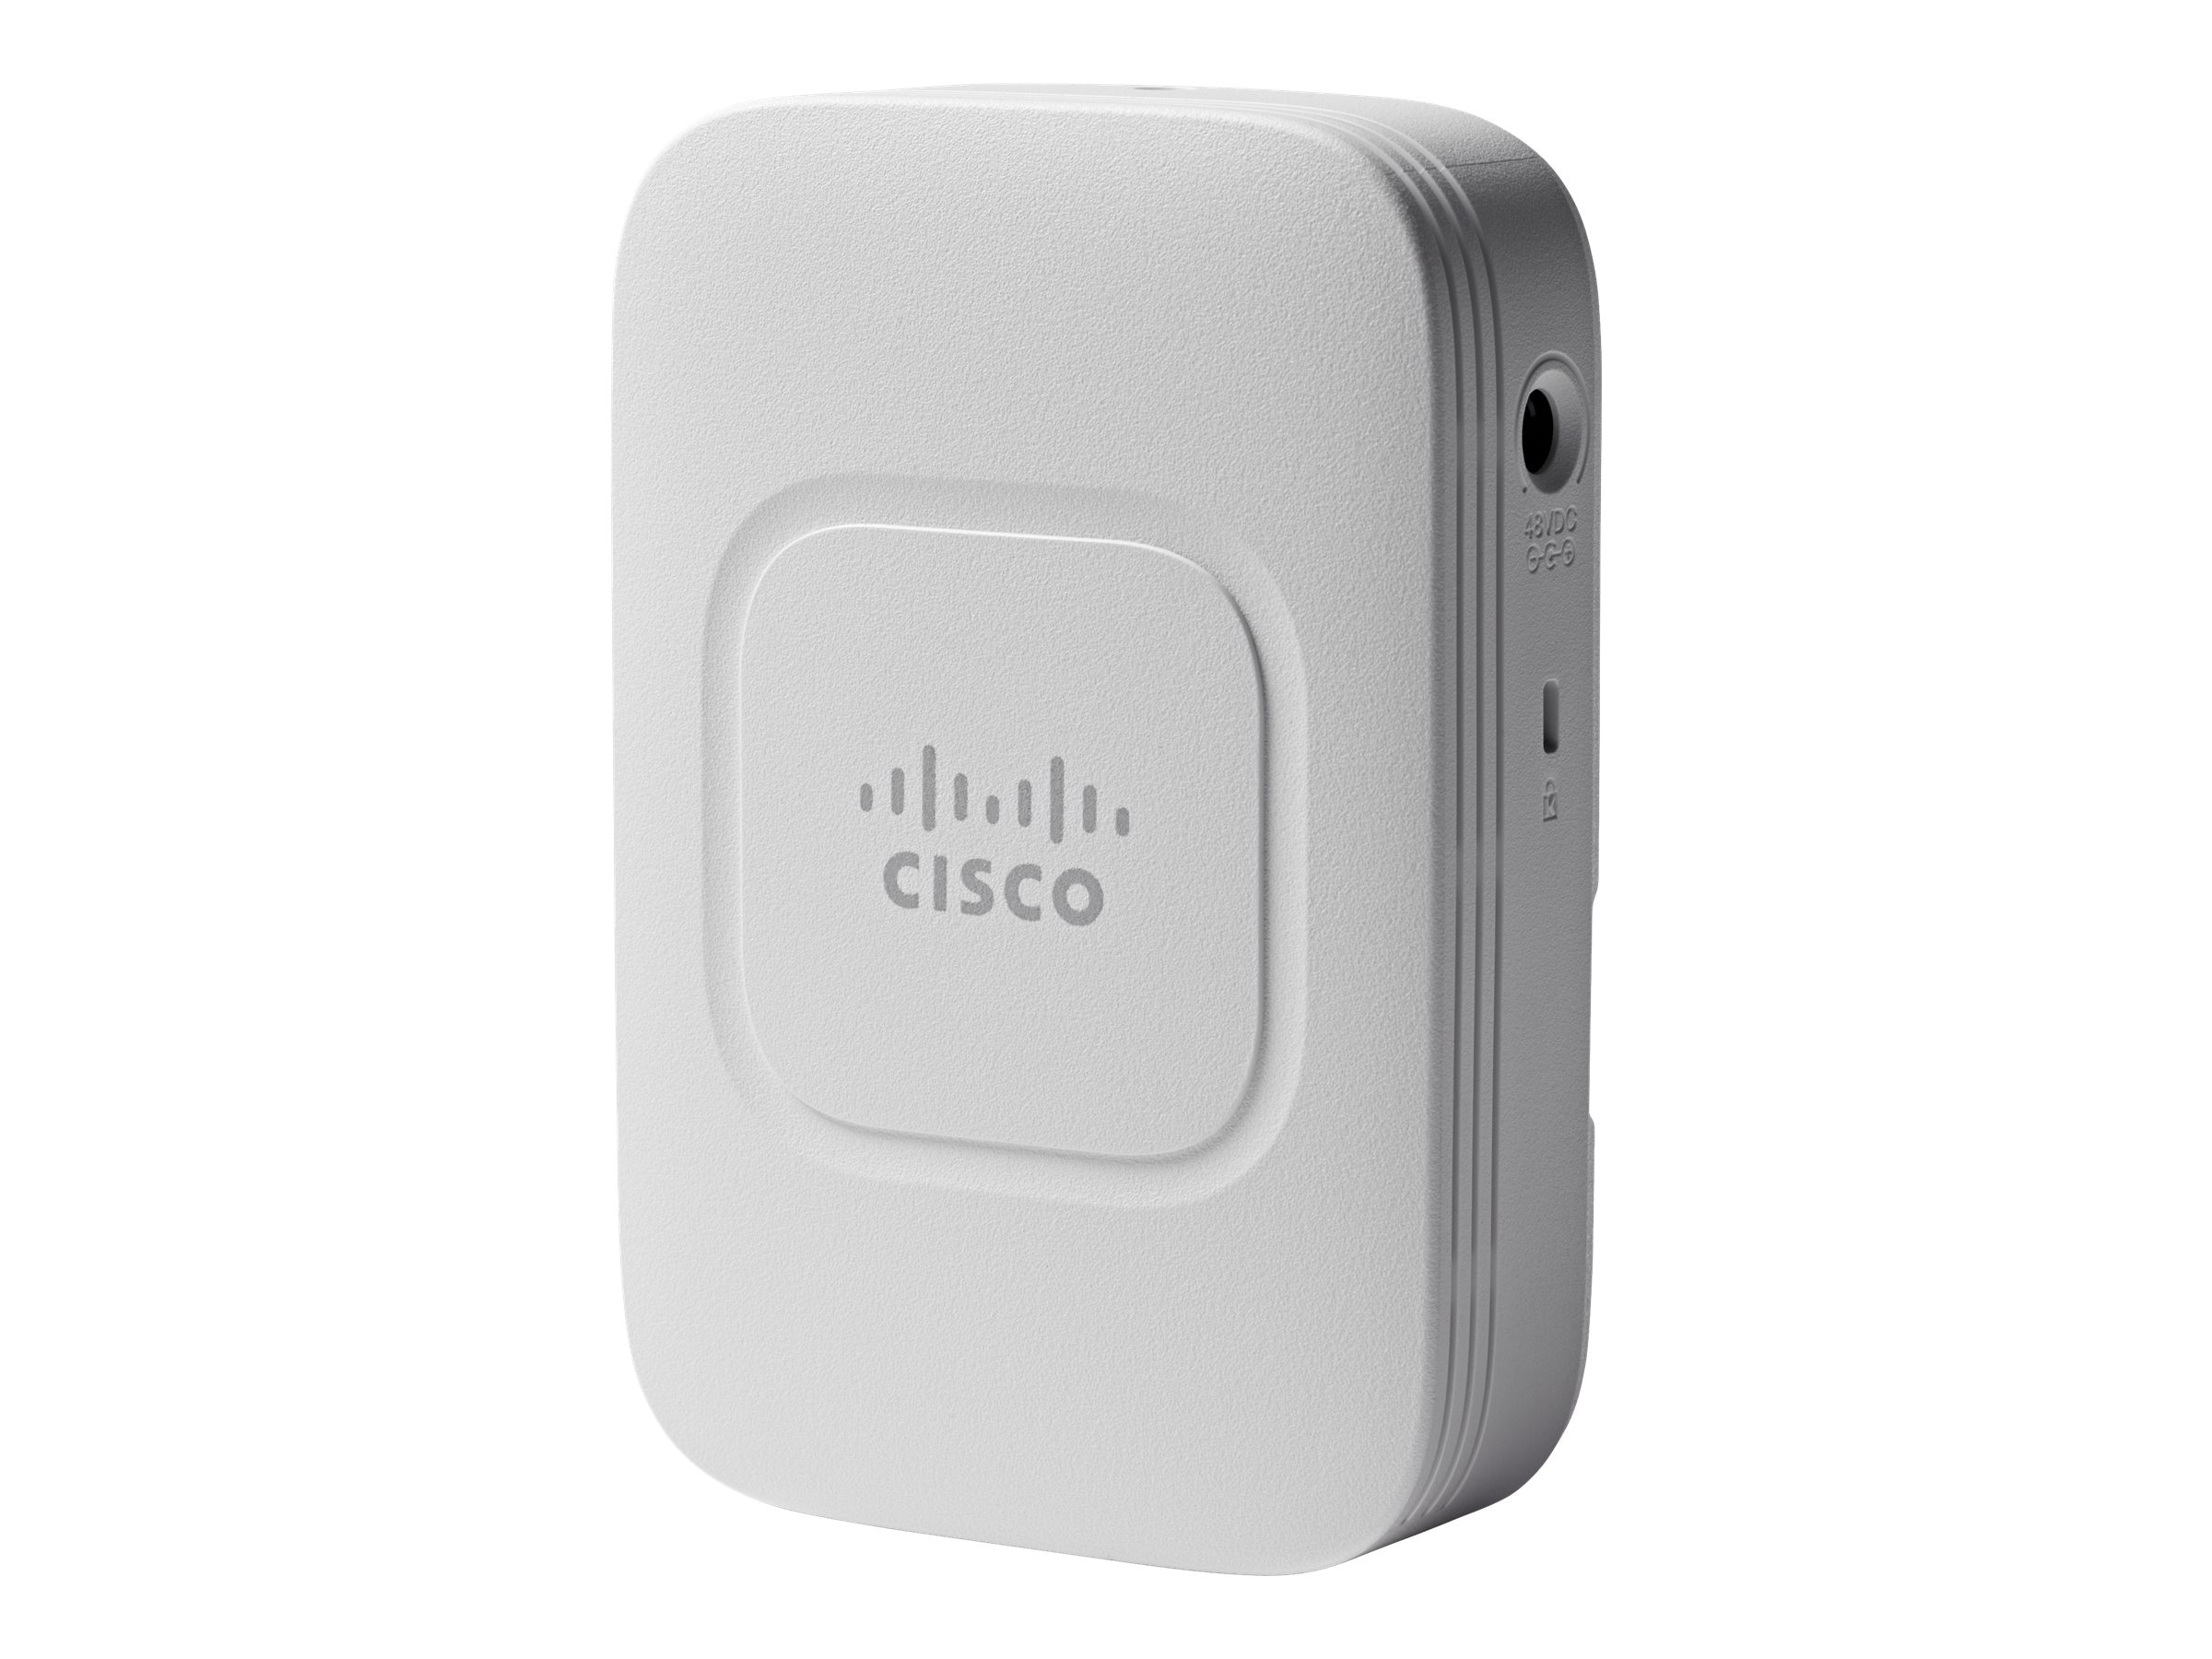 Cisco AIR-CAP702W-BK910 Image 1